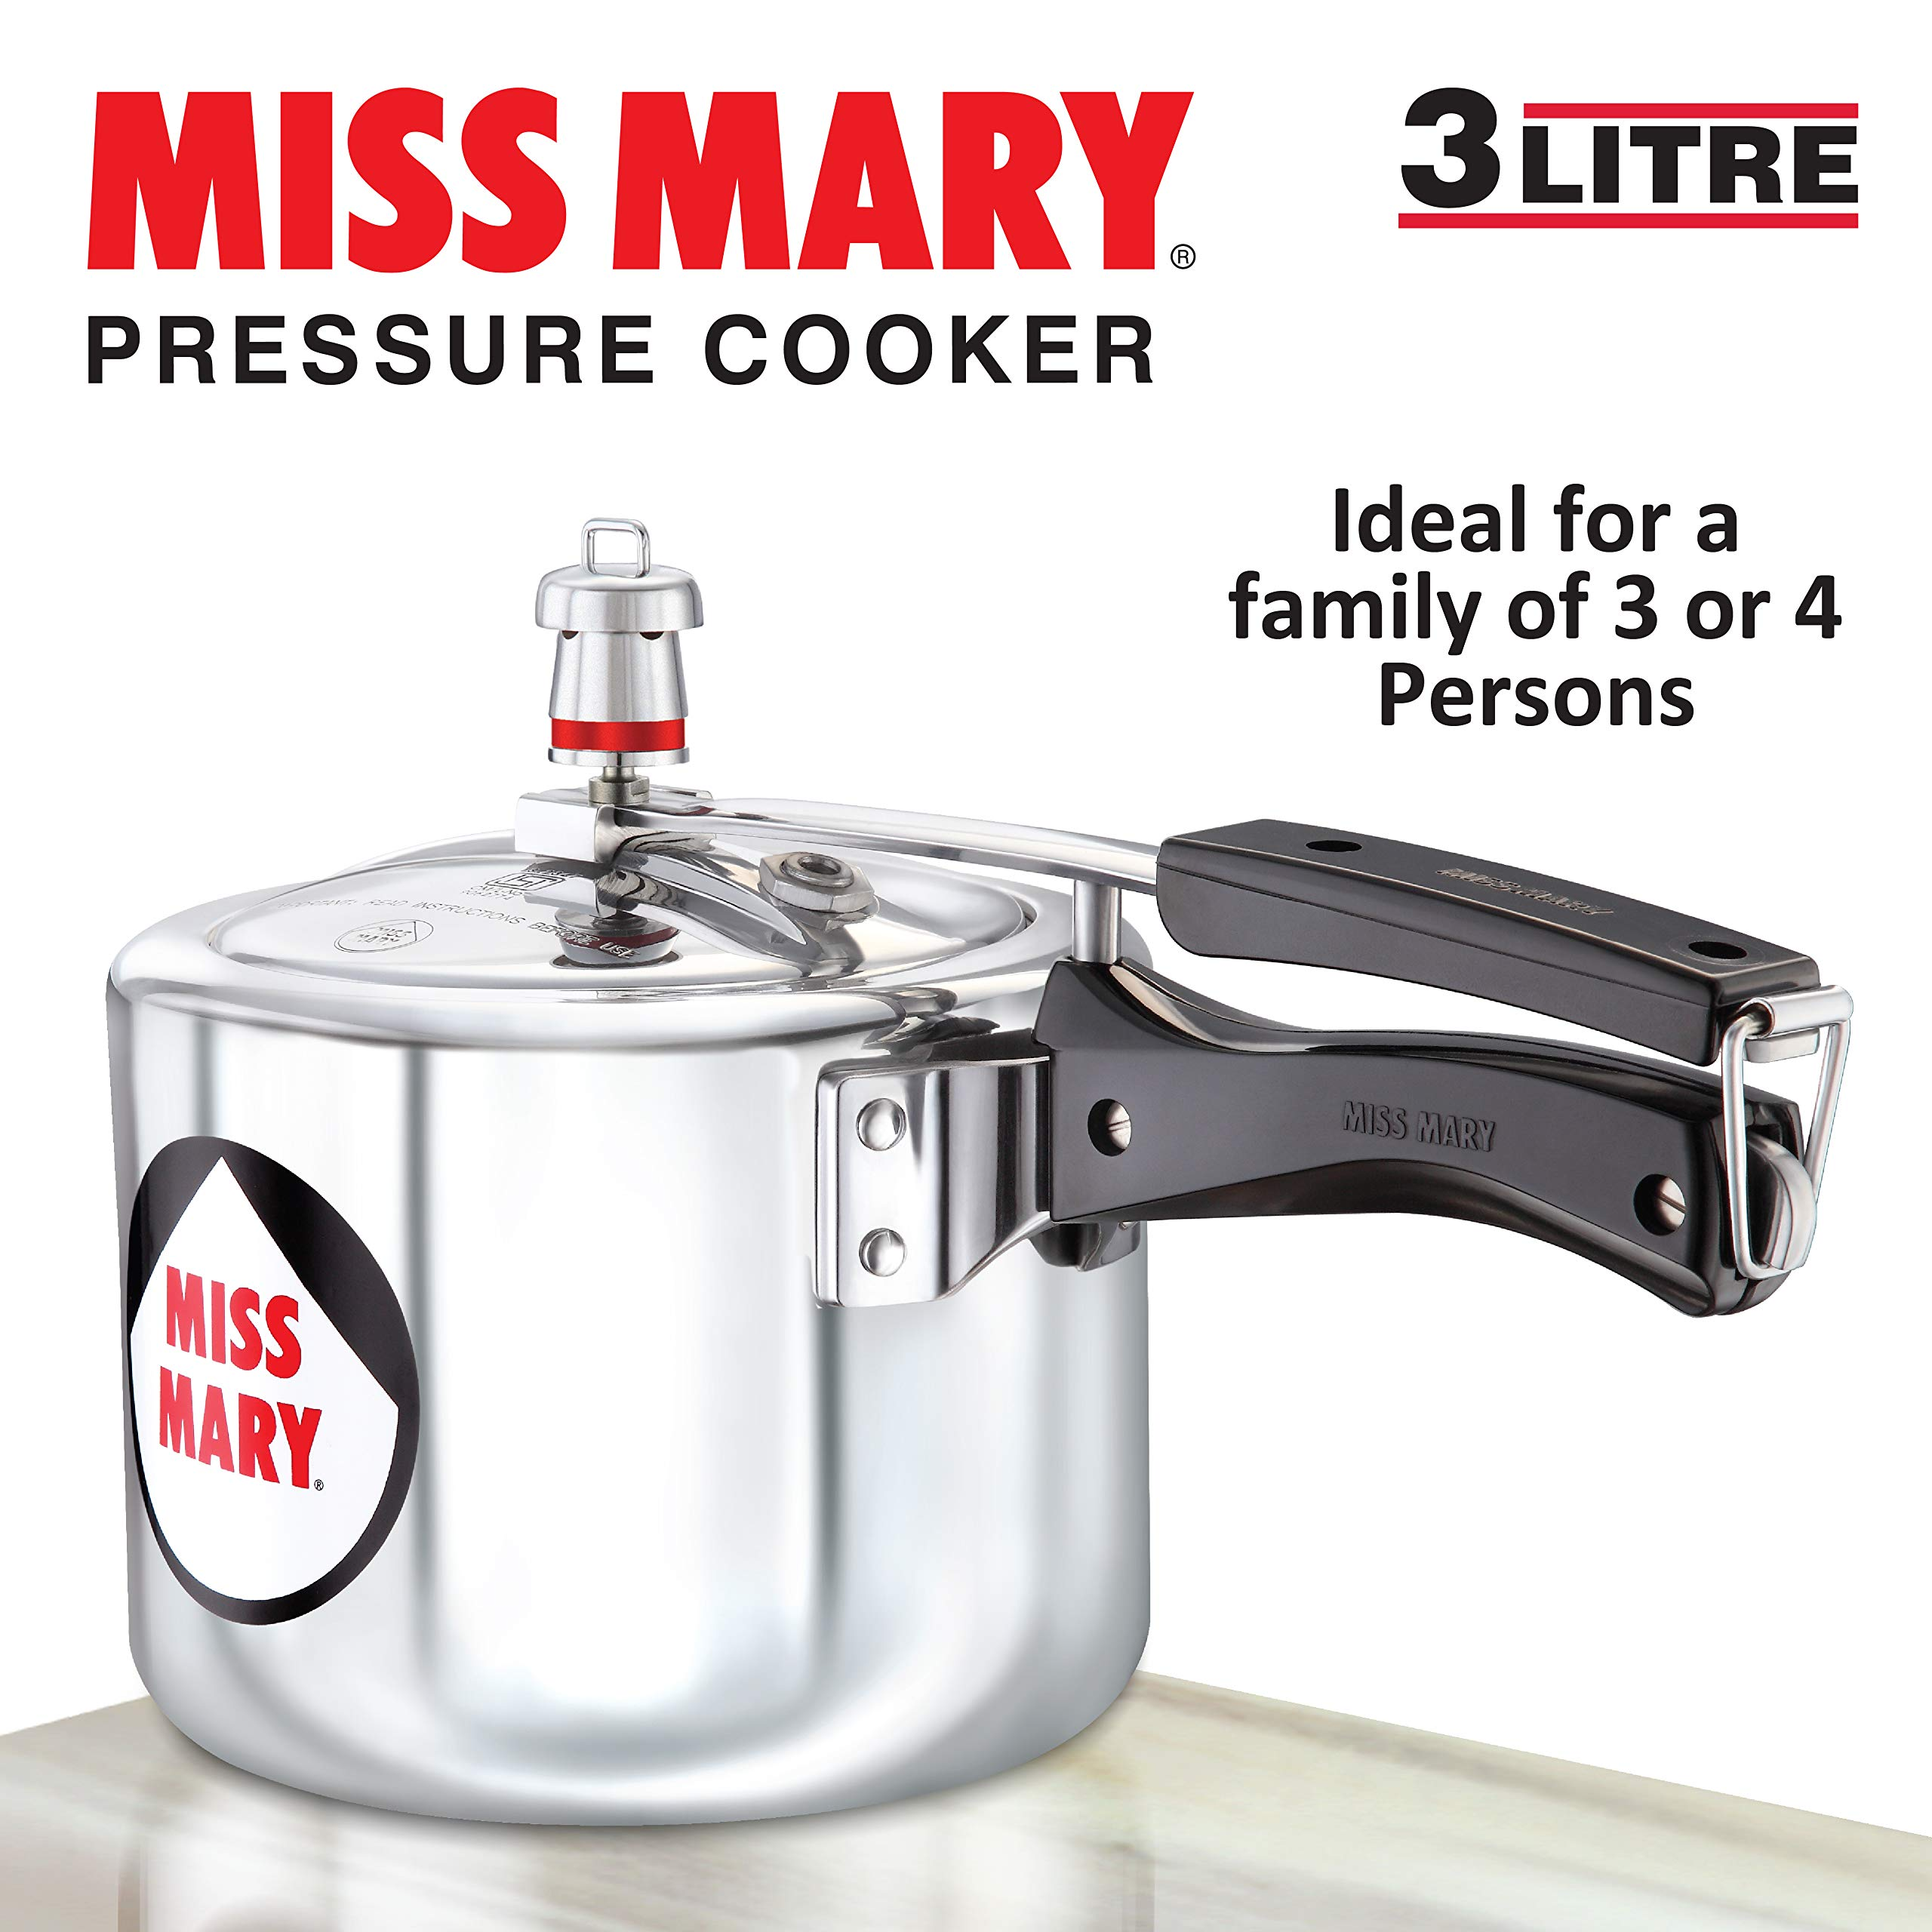 Hawkins Miss Mary Aluminium Pressure Cooker, 3 litres, Silver product image